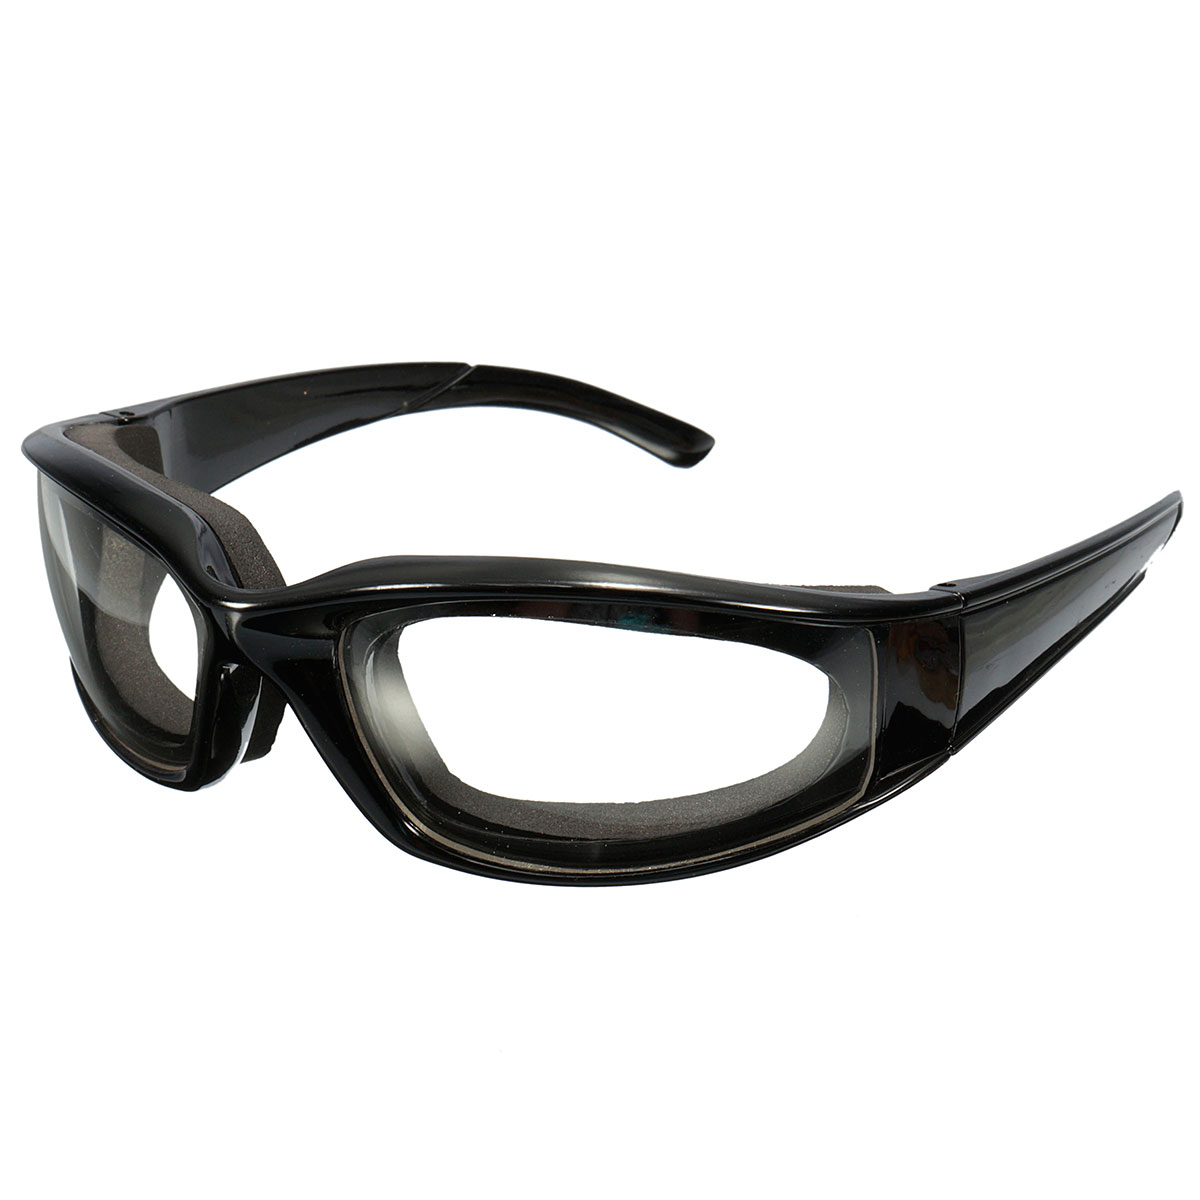 цена на NEW Safurance Goggles Glasses Built In Sponge Kitchen Slicing Eye Protection  Workplace Safety Windproof  Anti-sand